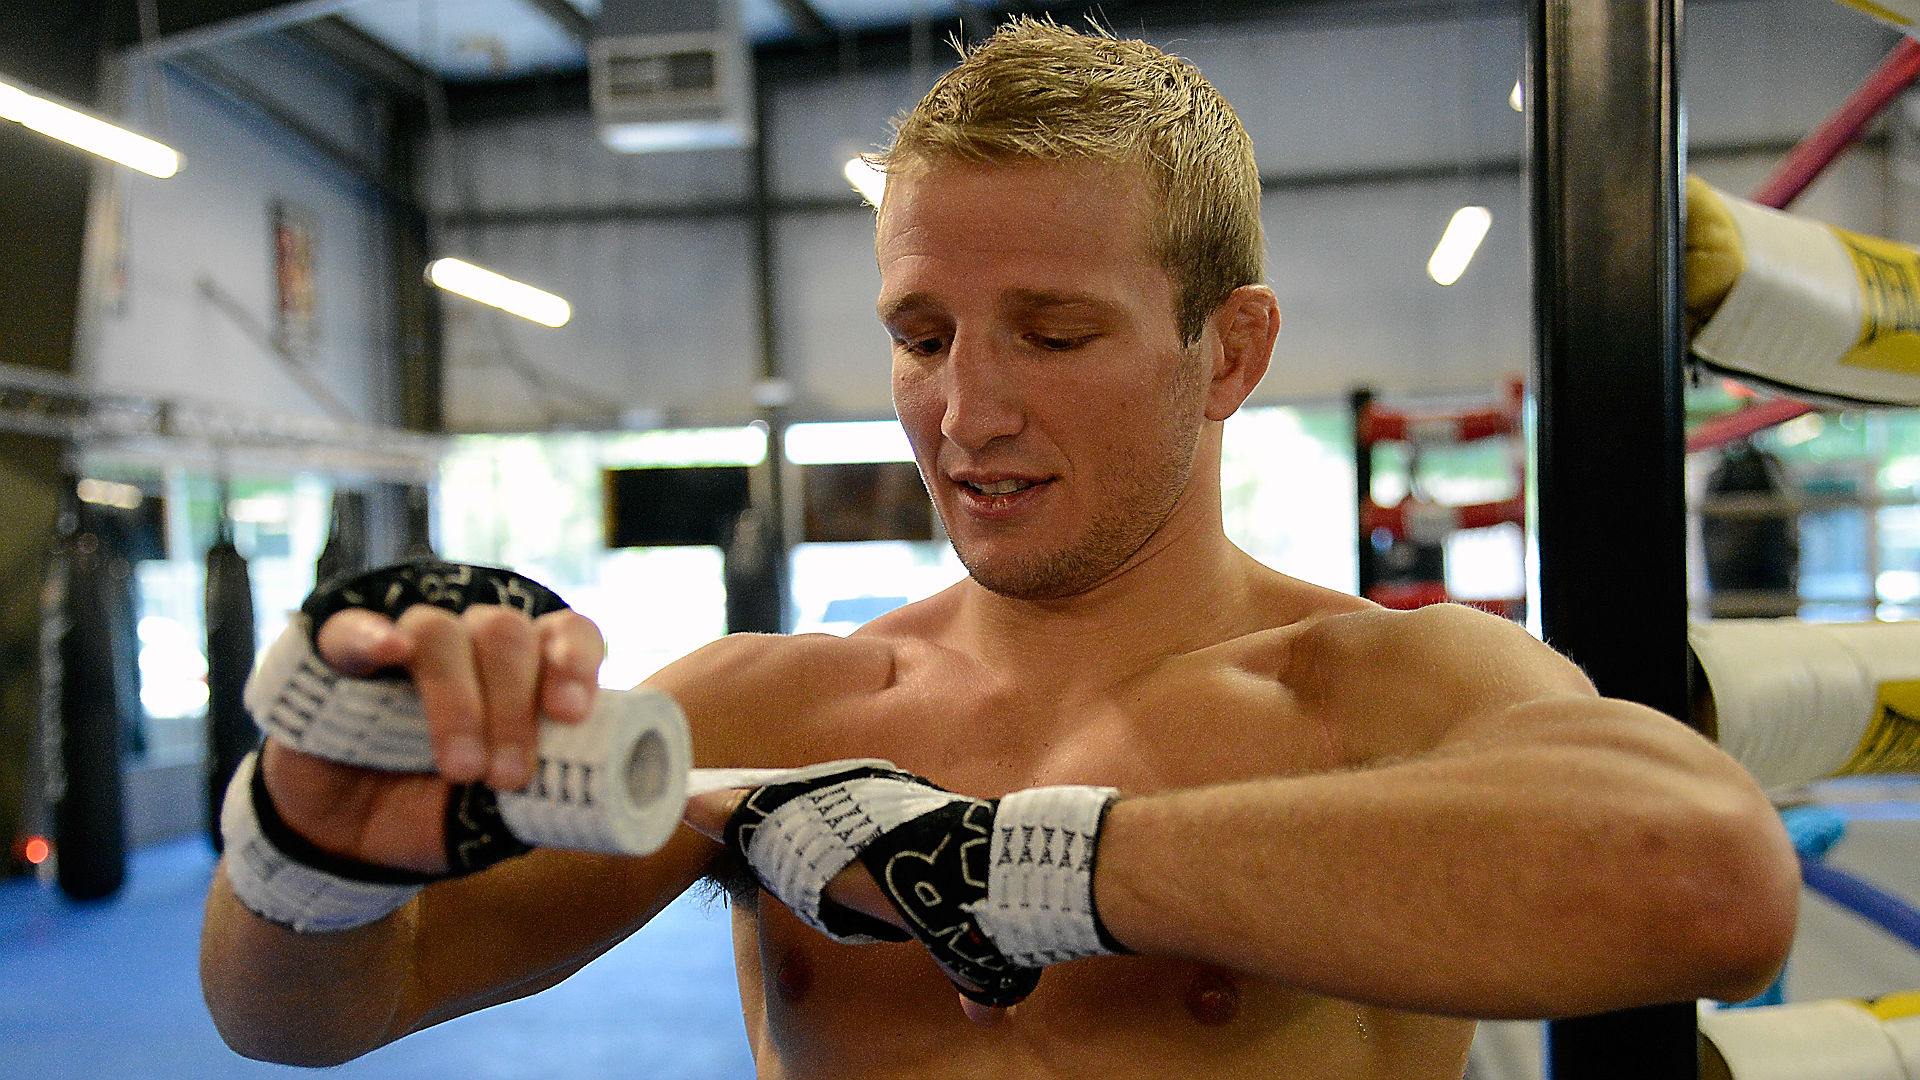 UFC odds and picks — Overreaction creates value in Dillashaw vs. Barao 2